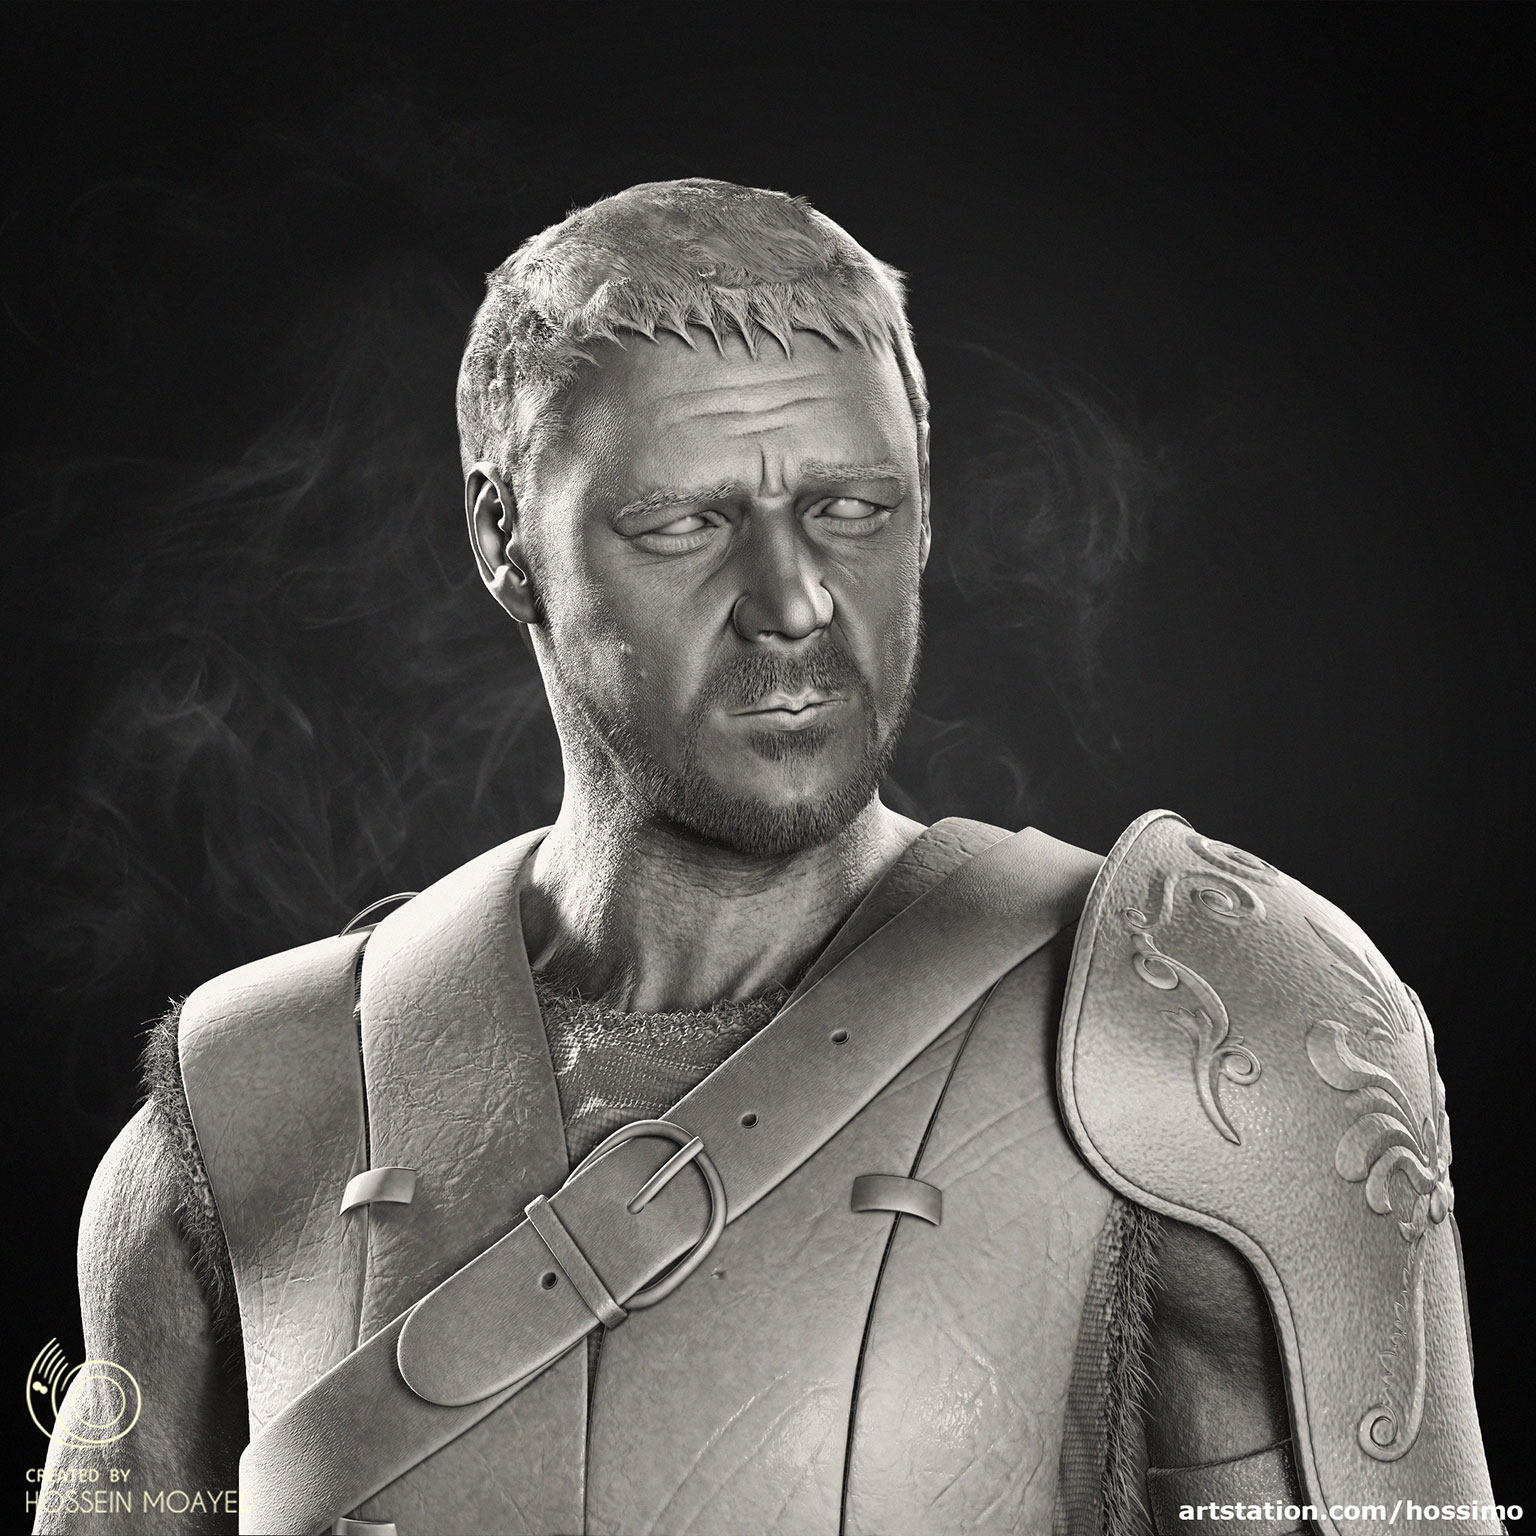 gladiator_tribute_sculpture_2_by_hossimo_square.jpg